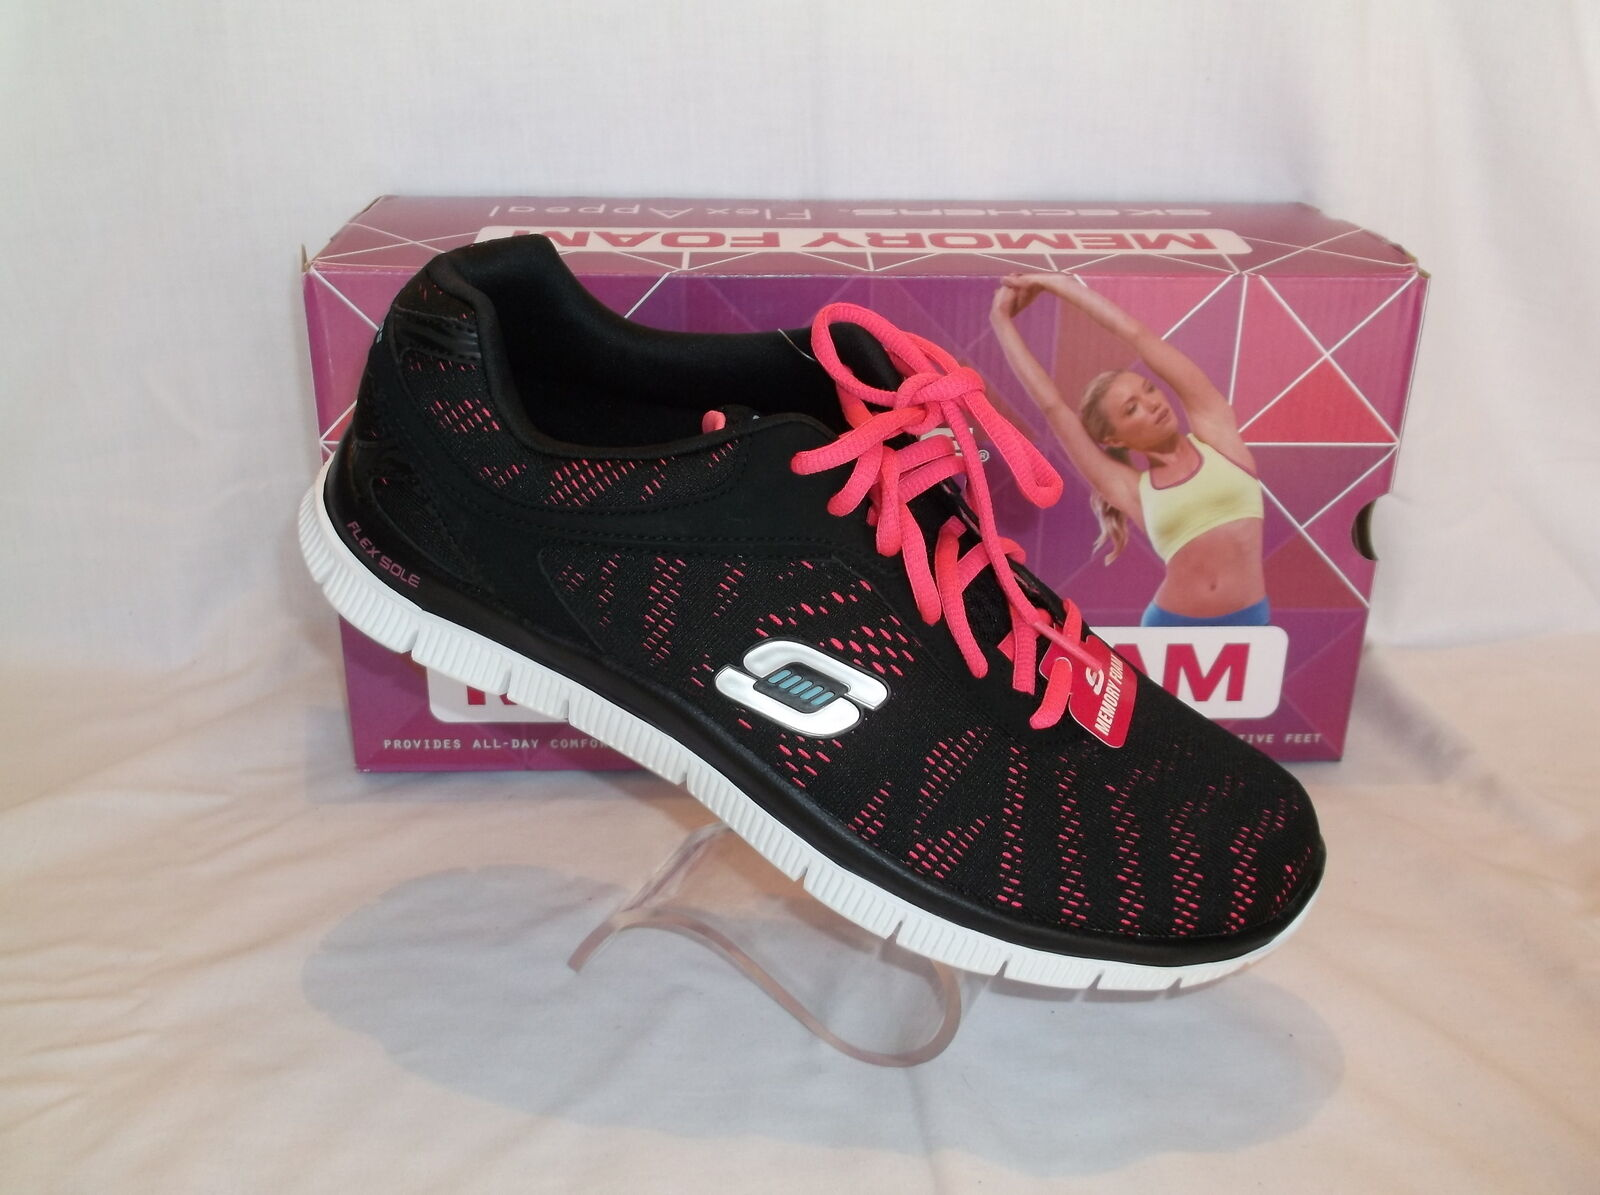 SKECHERS FLEX APPEALMEMORY FOAM ATHLETIC IN SHOE SZ 10 NEW IN ATHLETIC BOX a8a473